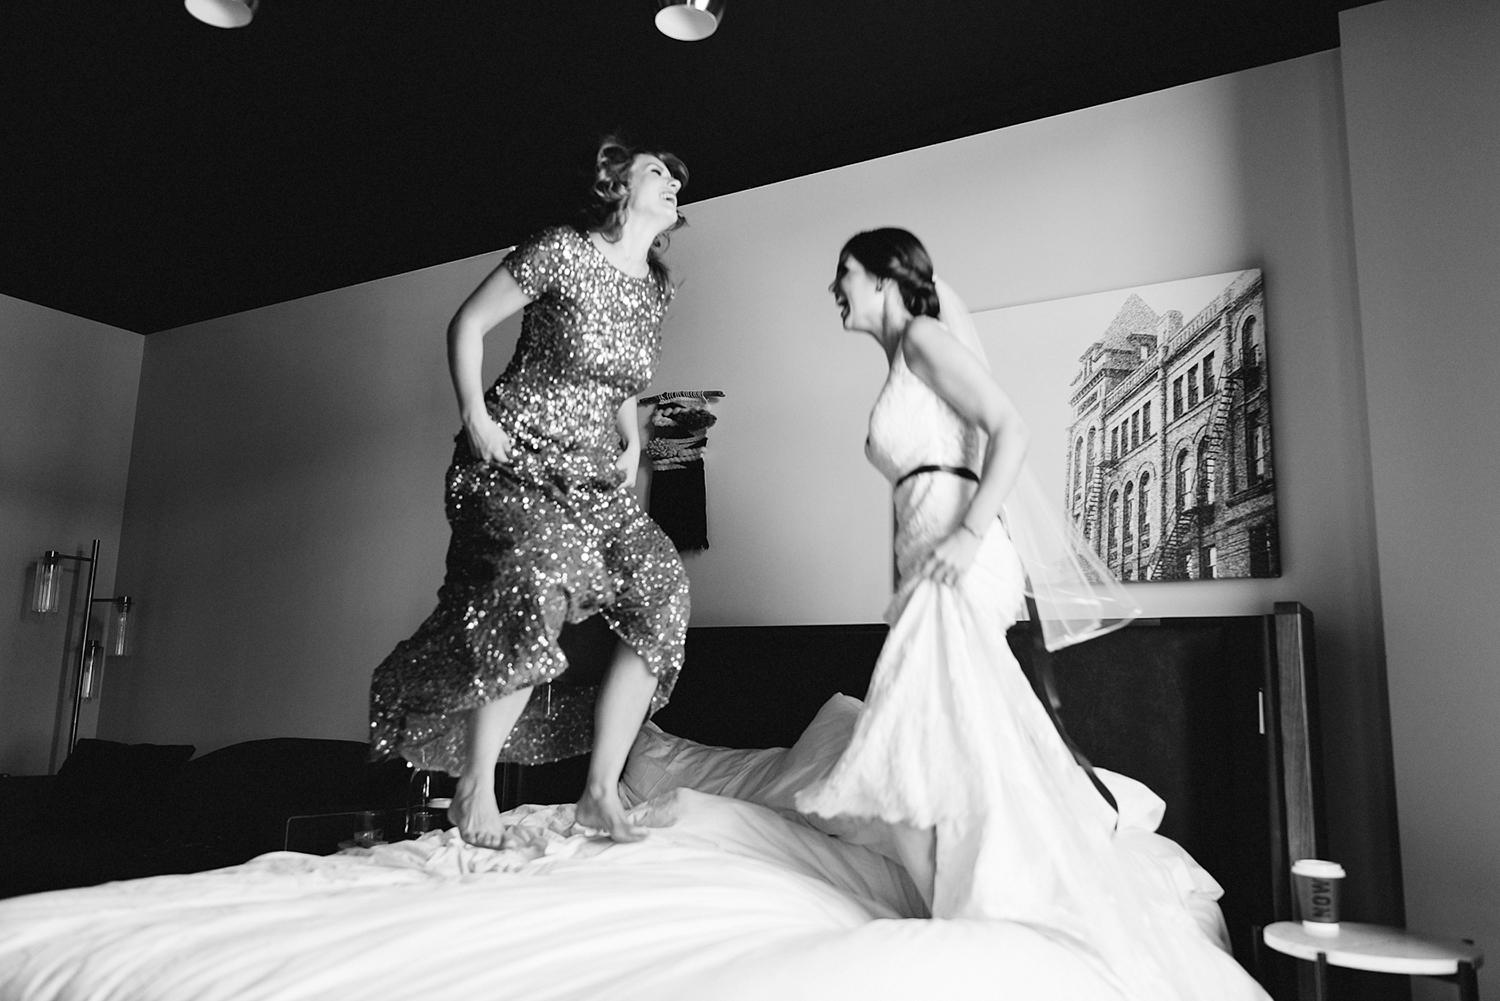 14-broadview-hotel-real-wedding-in-downtown-toronto-best-venues-broadview-hotel-wedding-photos-analog-wedding-photography-22.jpg